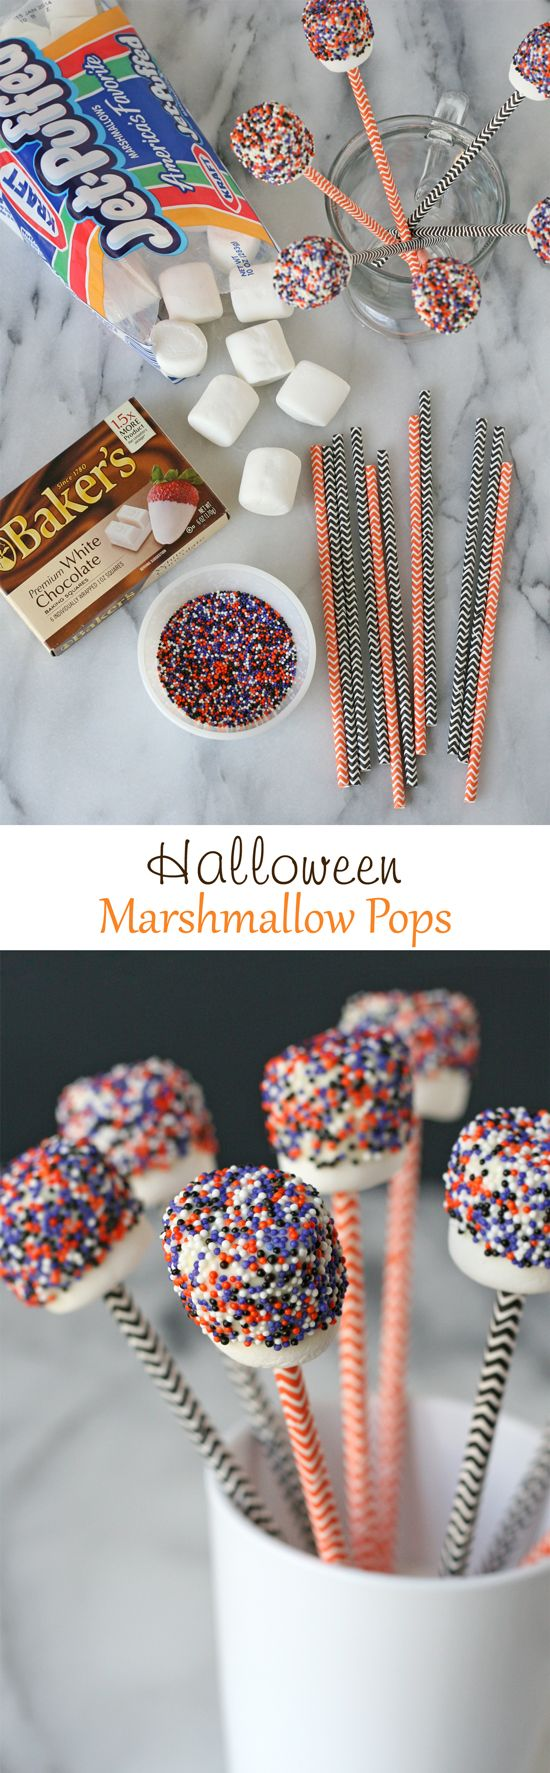 Halloween Marshmallow Pops - So simple and so cute!